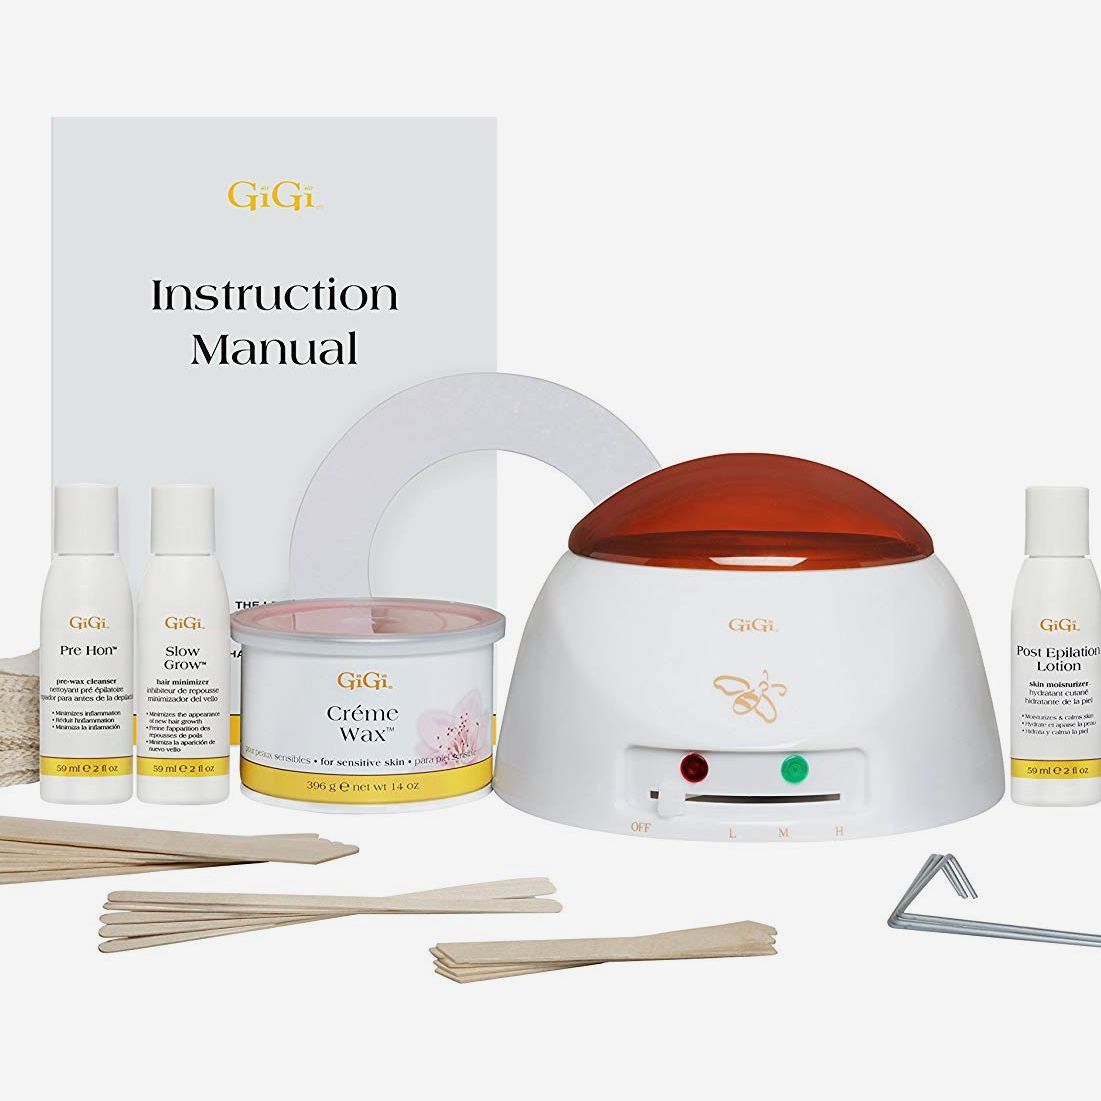 15 Best At Home Waxing Products The Strategist New York Magazine